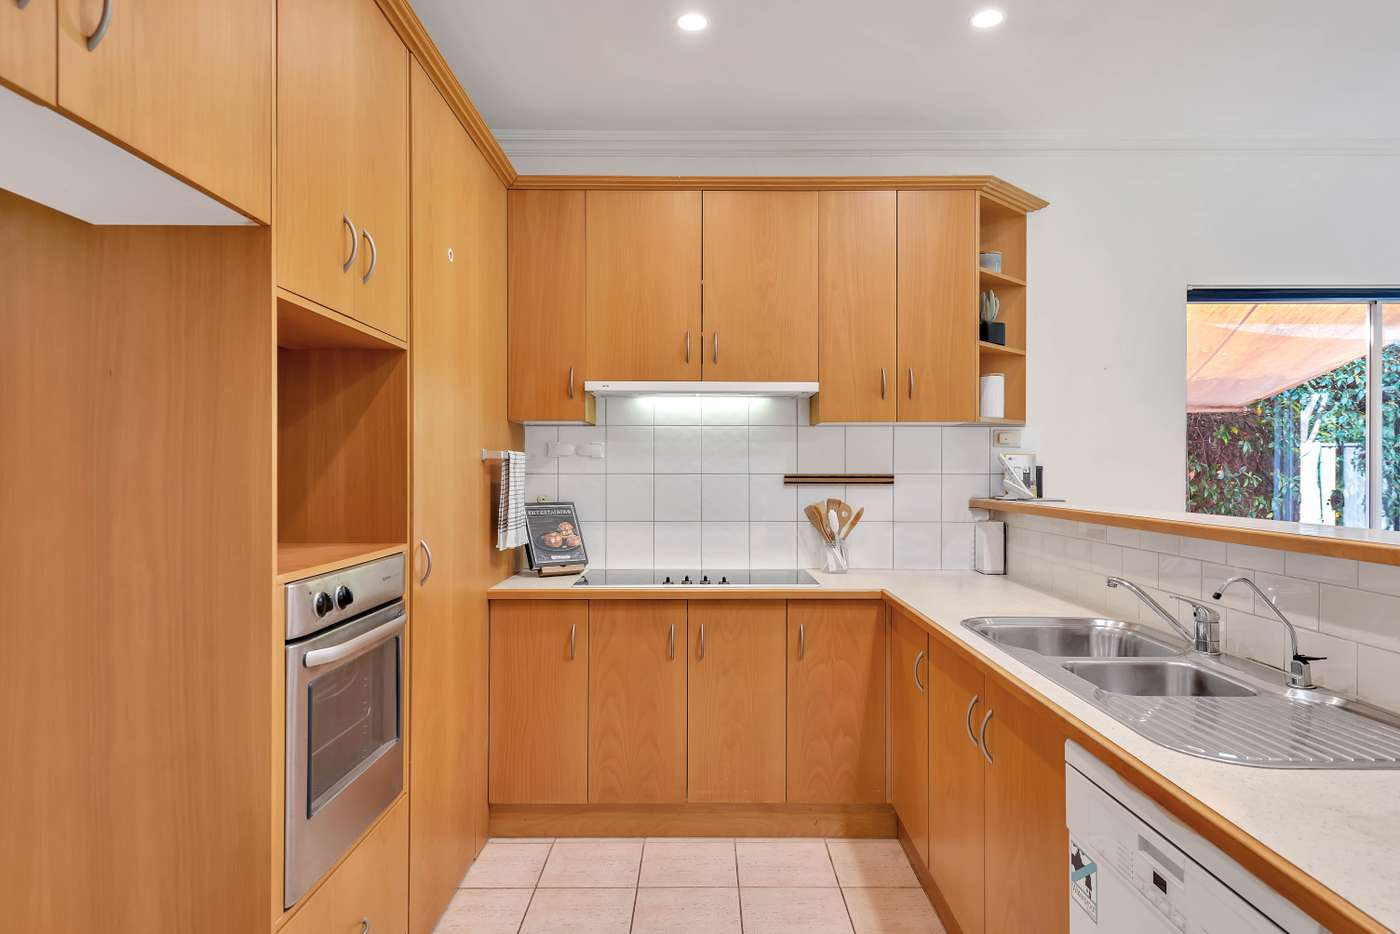 Sixth view of Homely house listing, 3 Wenlock Street, Brighton SA 5048